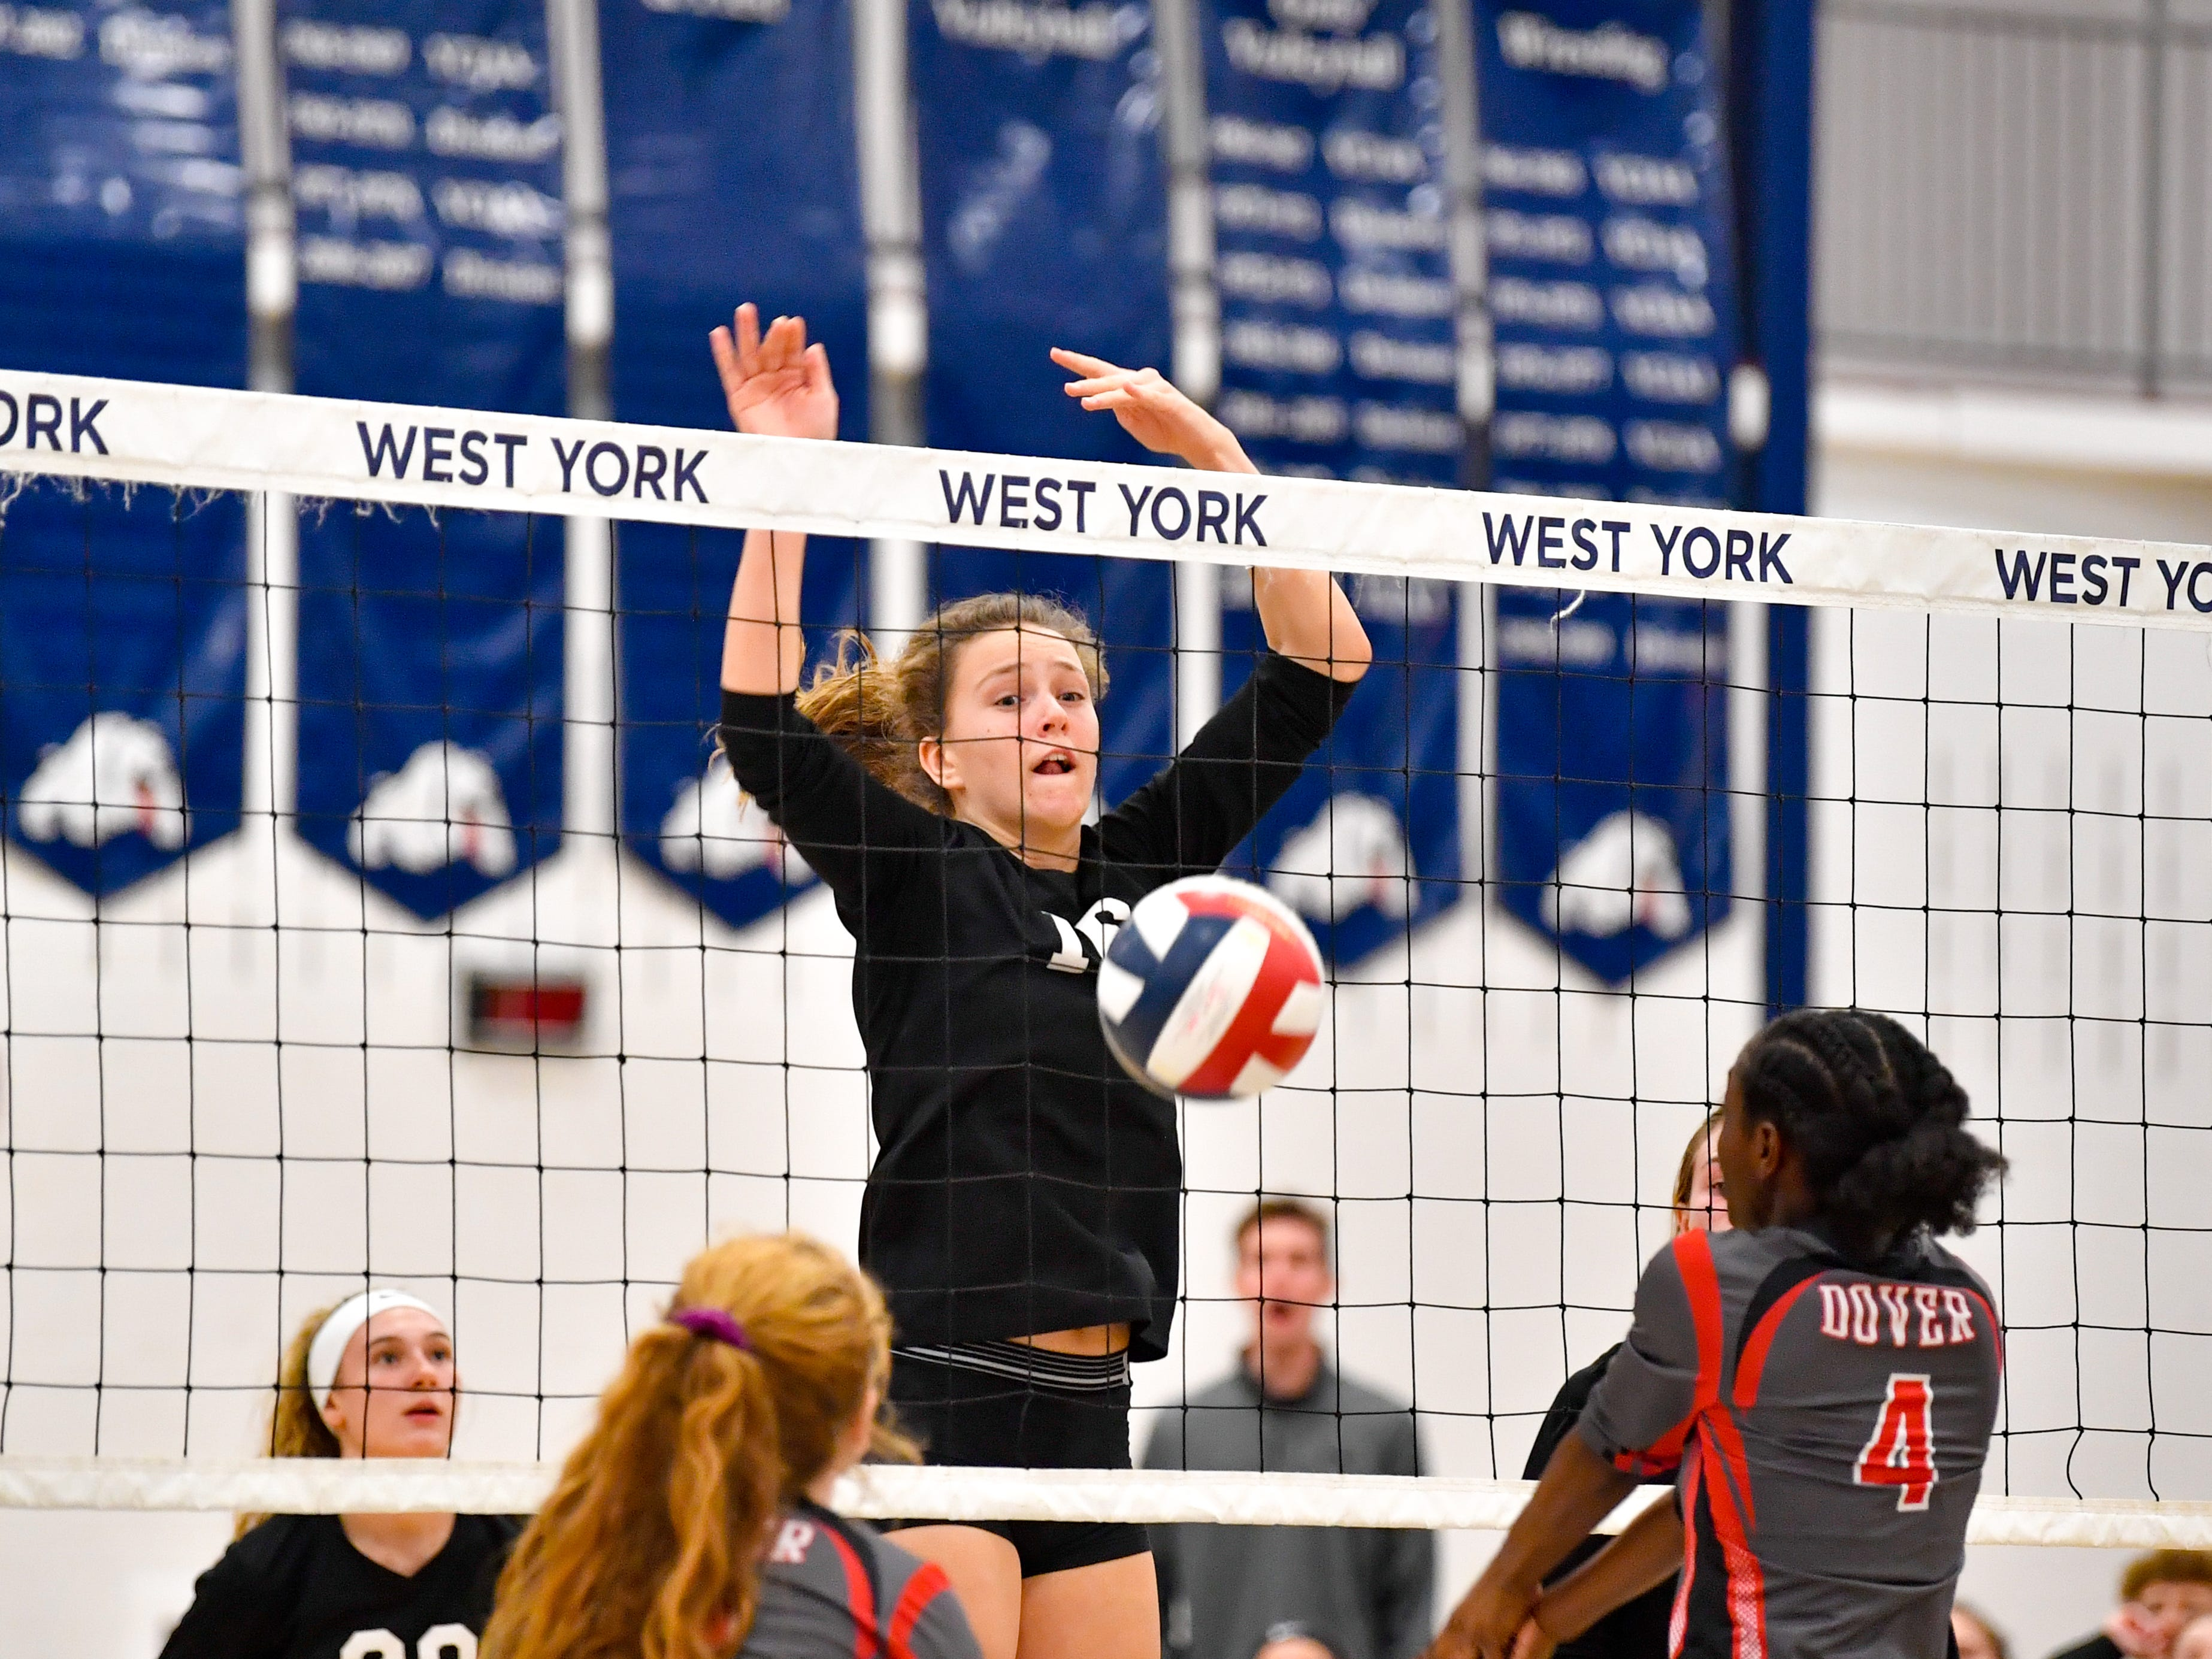 Maddison Perring (16) blocks the ball during the District 3 Class 3A girls' volleyball quarterfinals between Dover and York Suburban at West York High School, October 30, 2018. The Eagles defeated the Trojans 3-2.